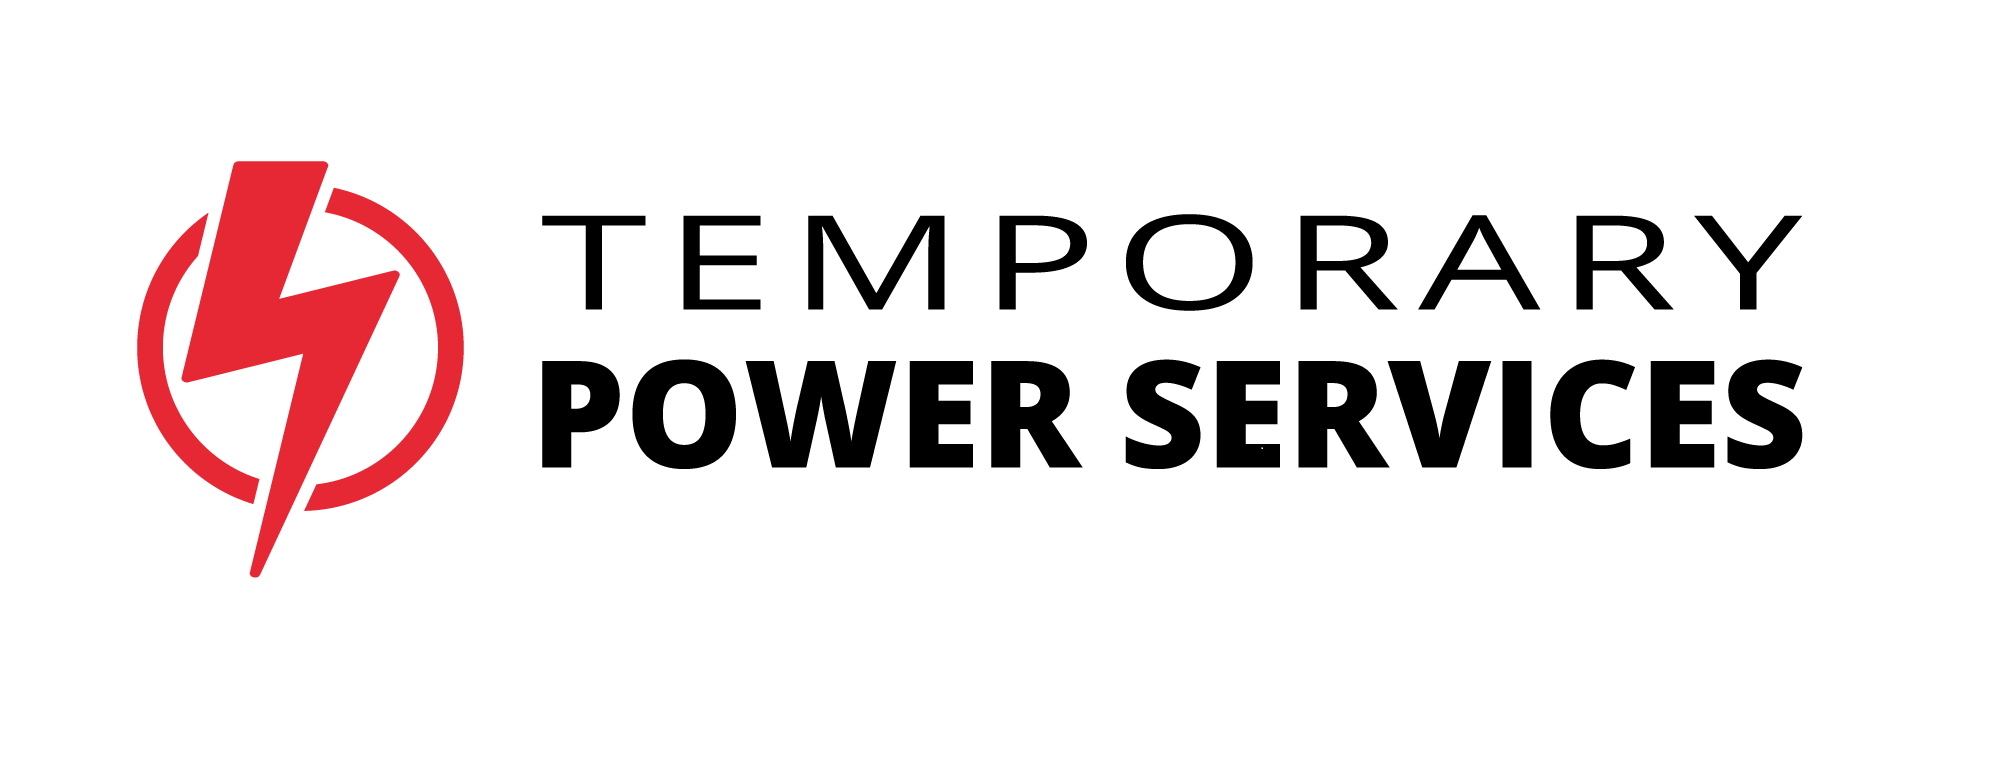 Temporary Power Services